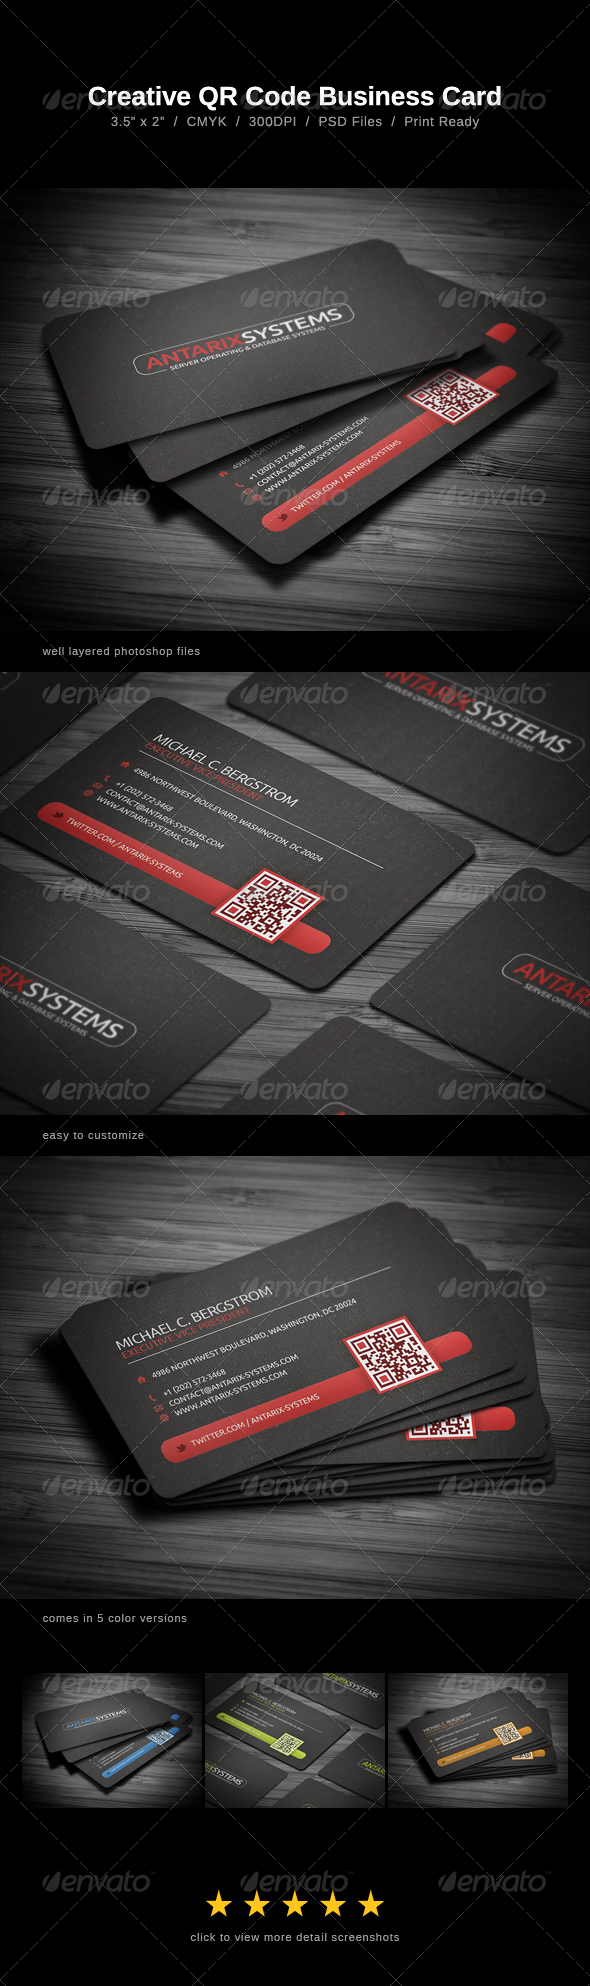 Creative QR Code Business Card - Business Cards Print Templates